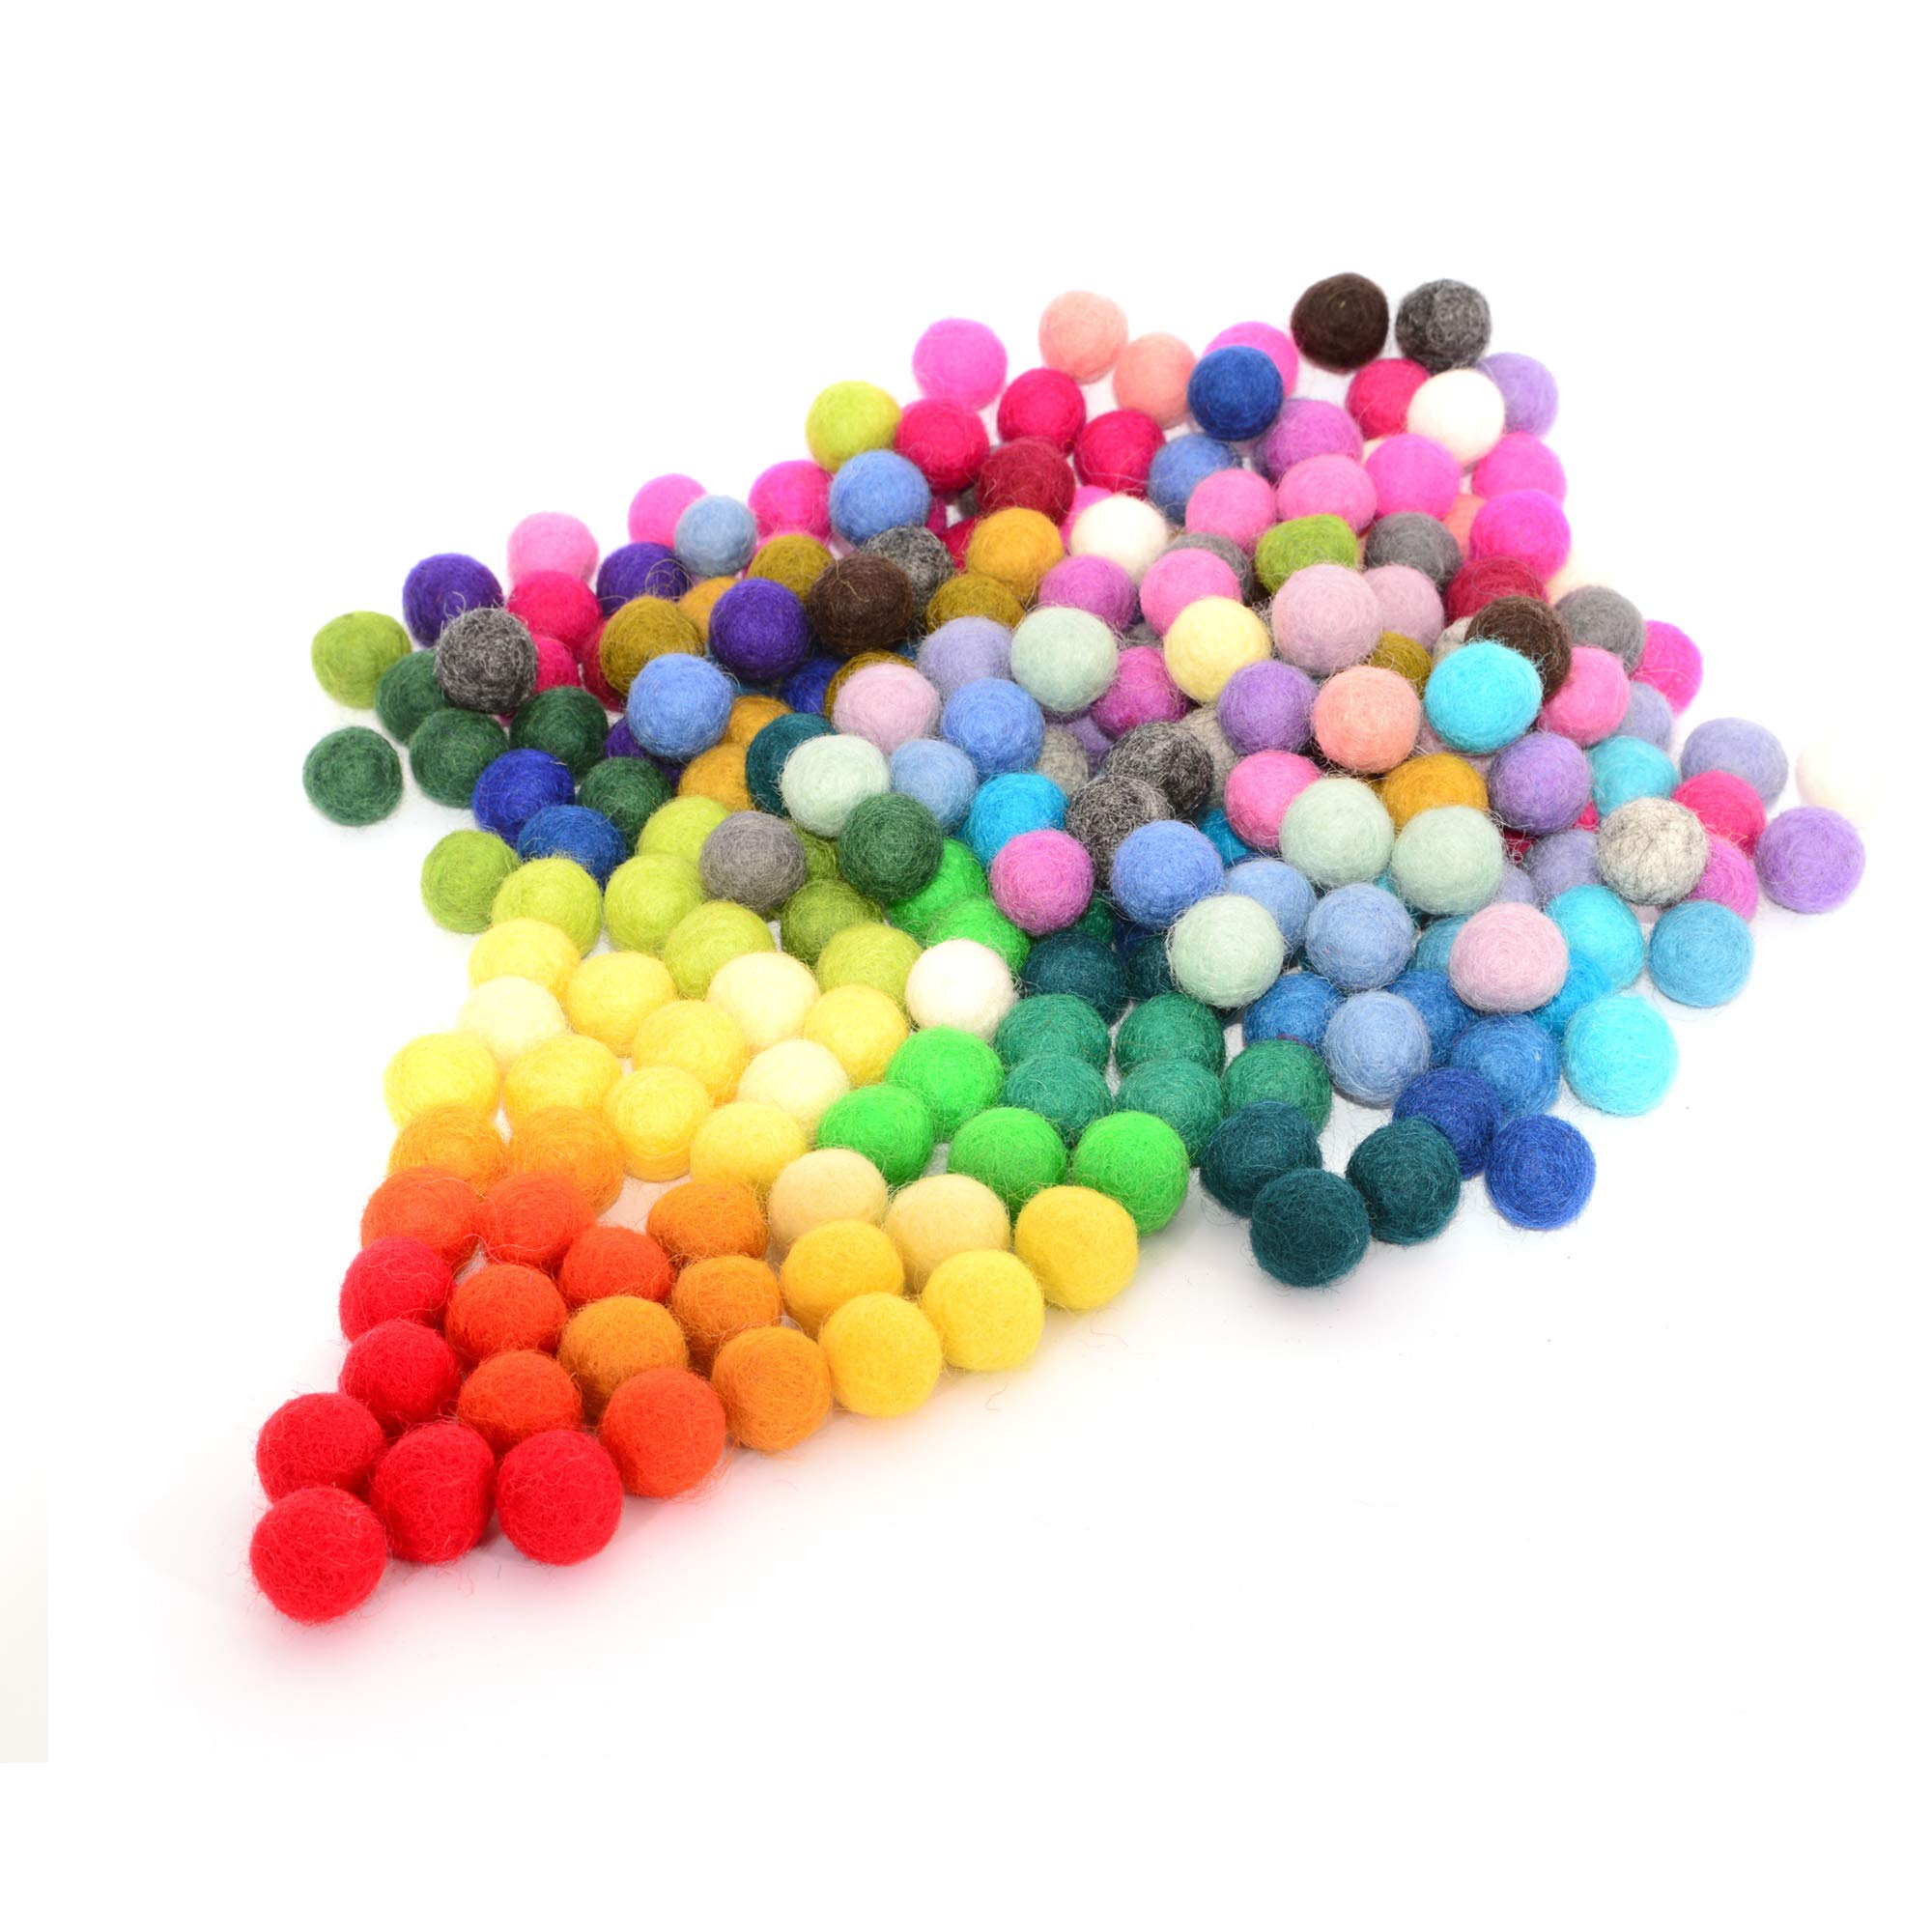 Glaciart Felt Pom Poms, Wool Balls (240 Pieces) Handmade Felted 40 Color (Red, Pink, Blue, Orange, Yellow, Gray, Black, White, Pastel & More) 2.5 cm - 1 Inch, Bulk Small Puff for Felting & Garland